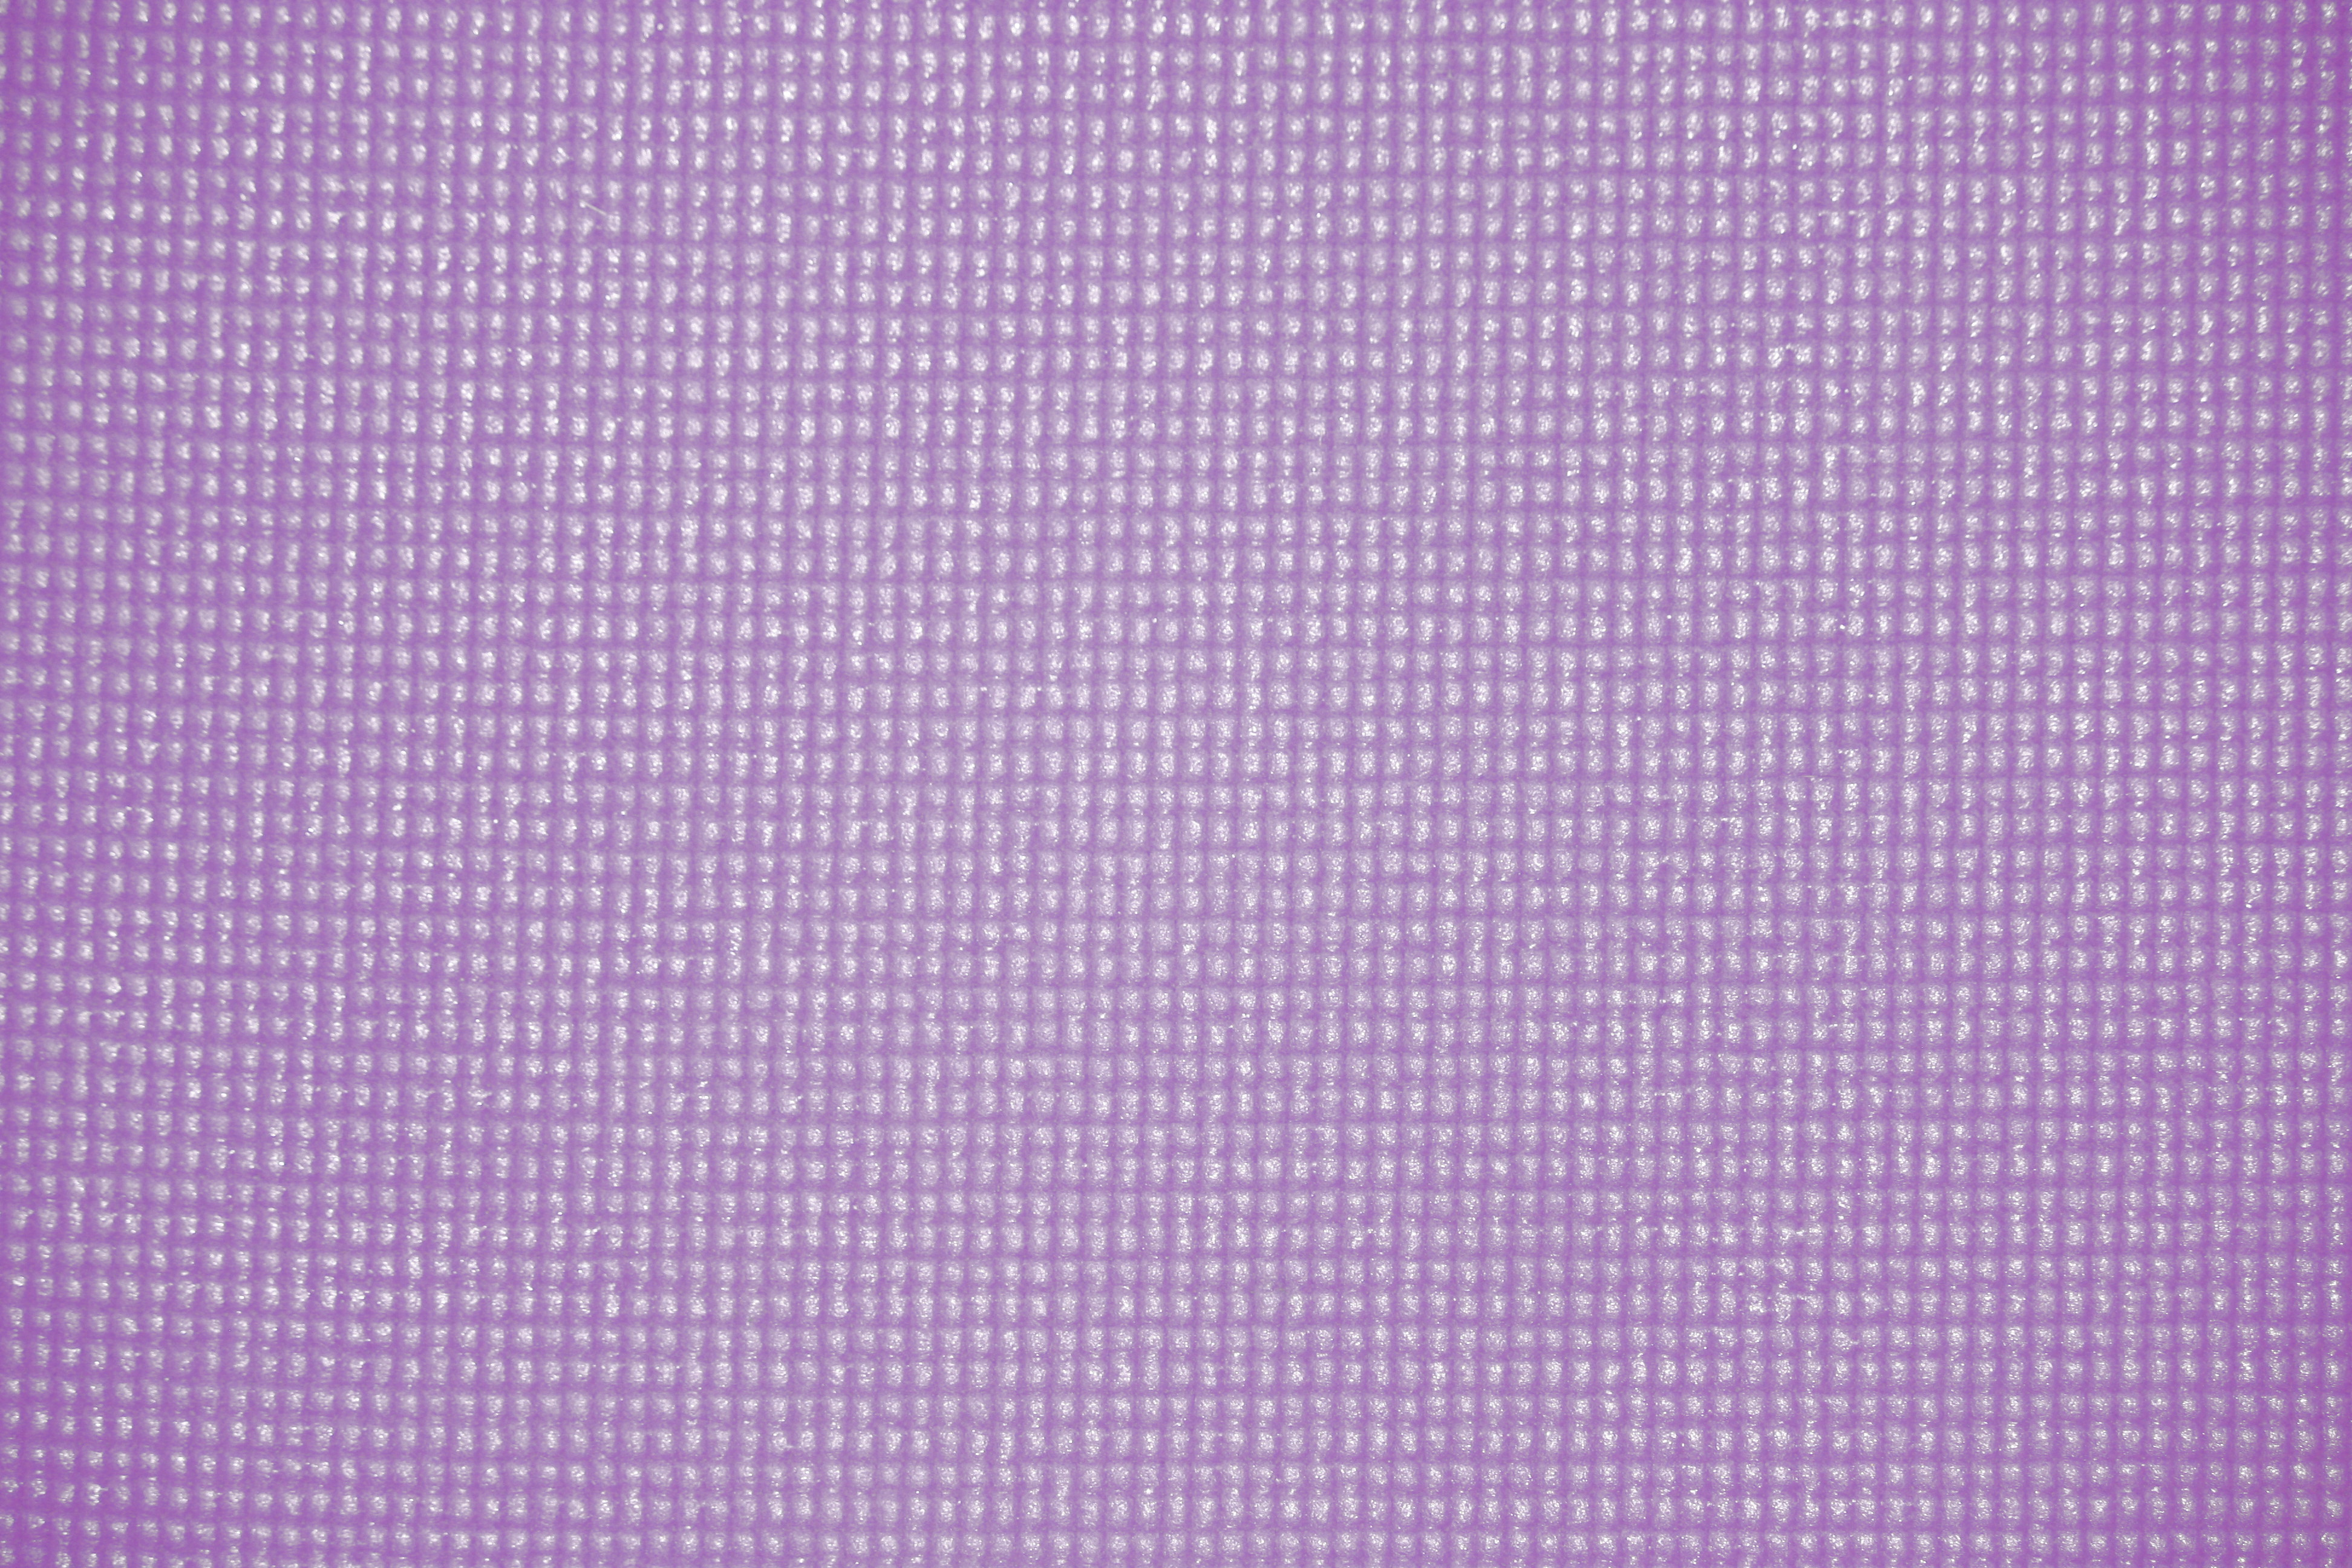 Lavender Yoga Exercise Mat Texture Picture Free